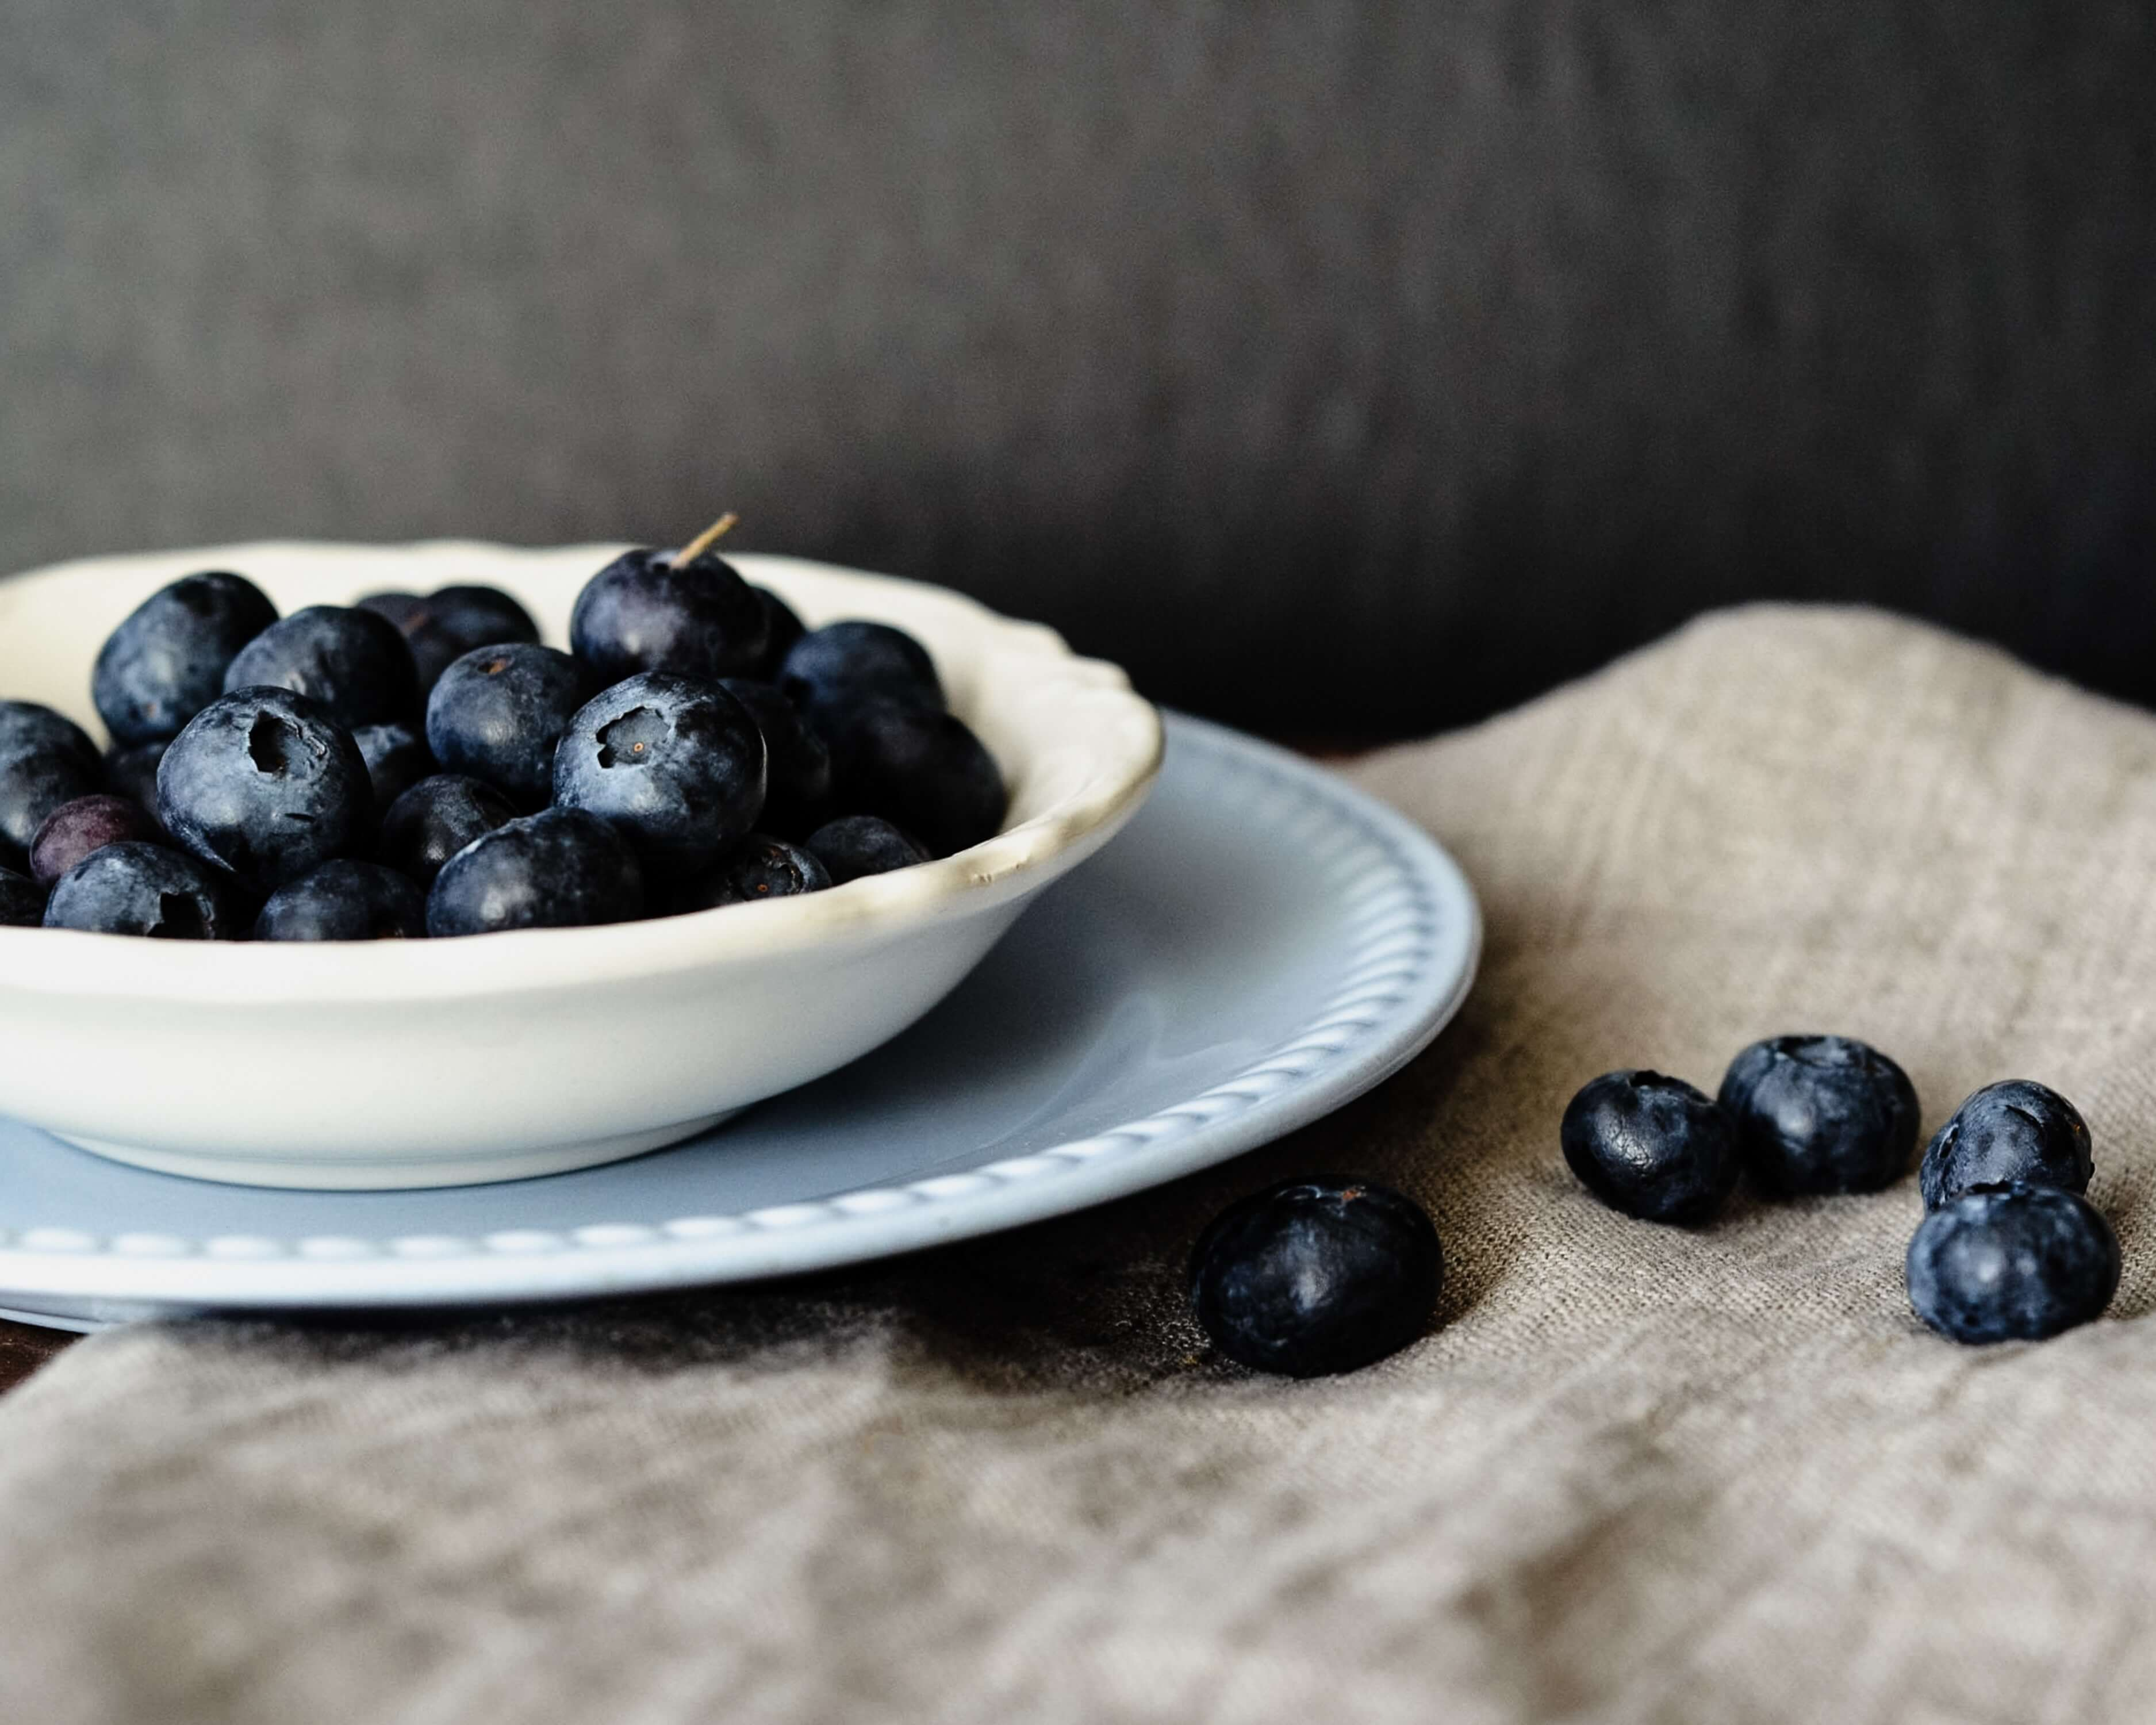 berries like blueberries are low calorie foods